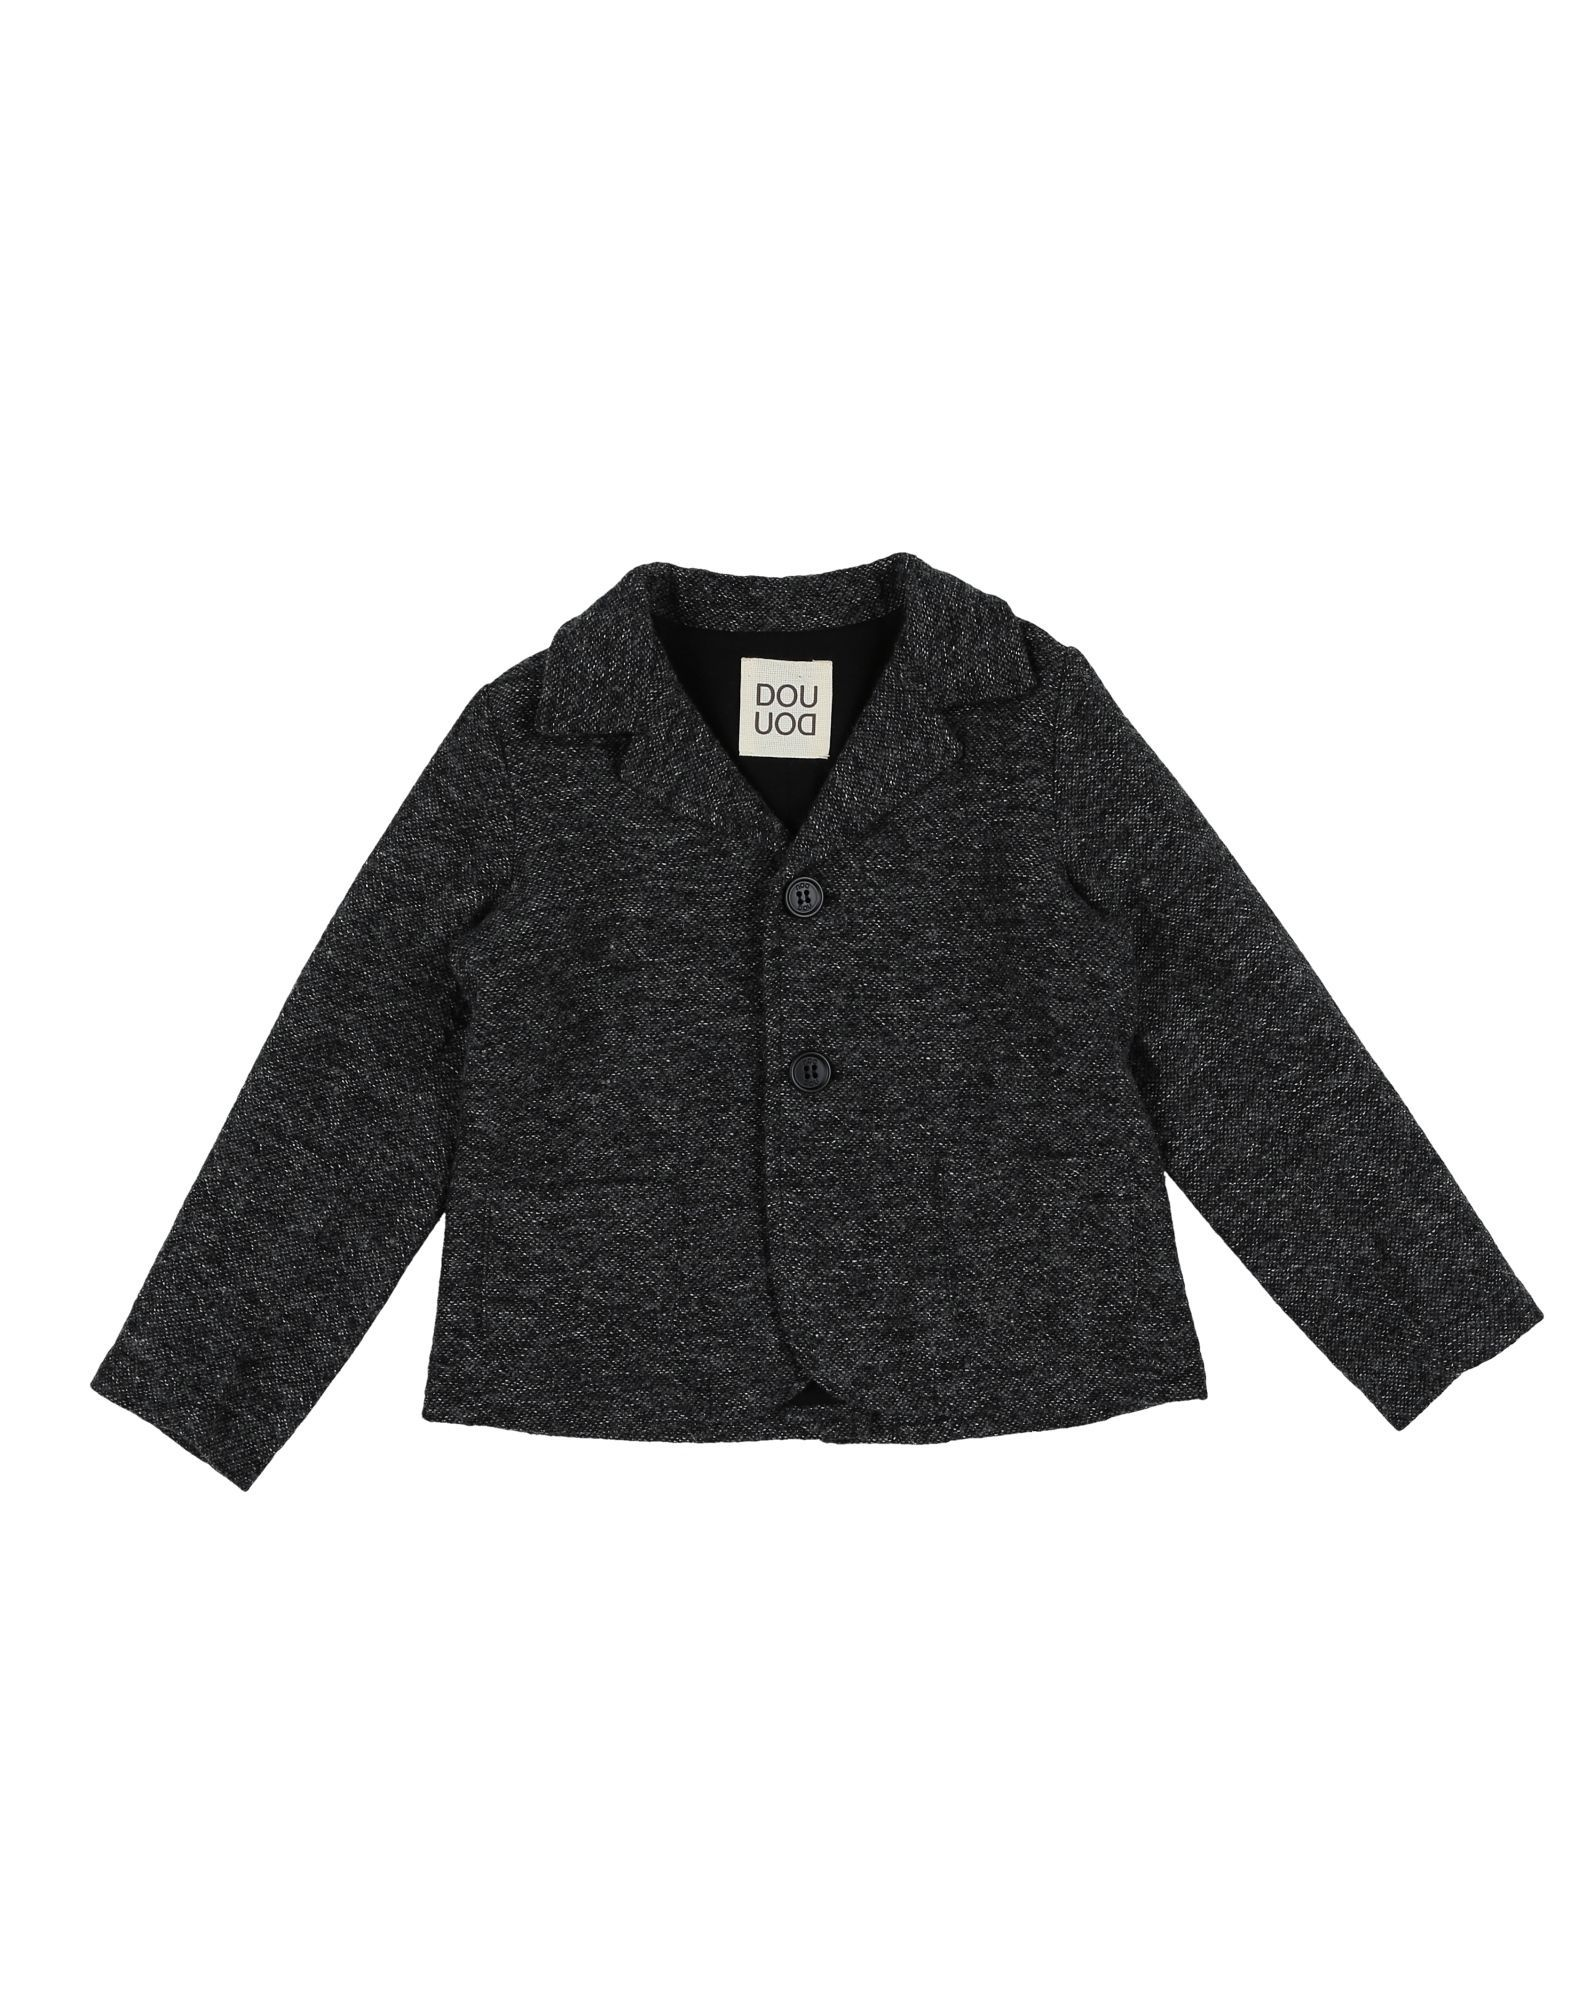 SUITS AND JACKETS Douuod Lead Boy Virgin Wool